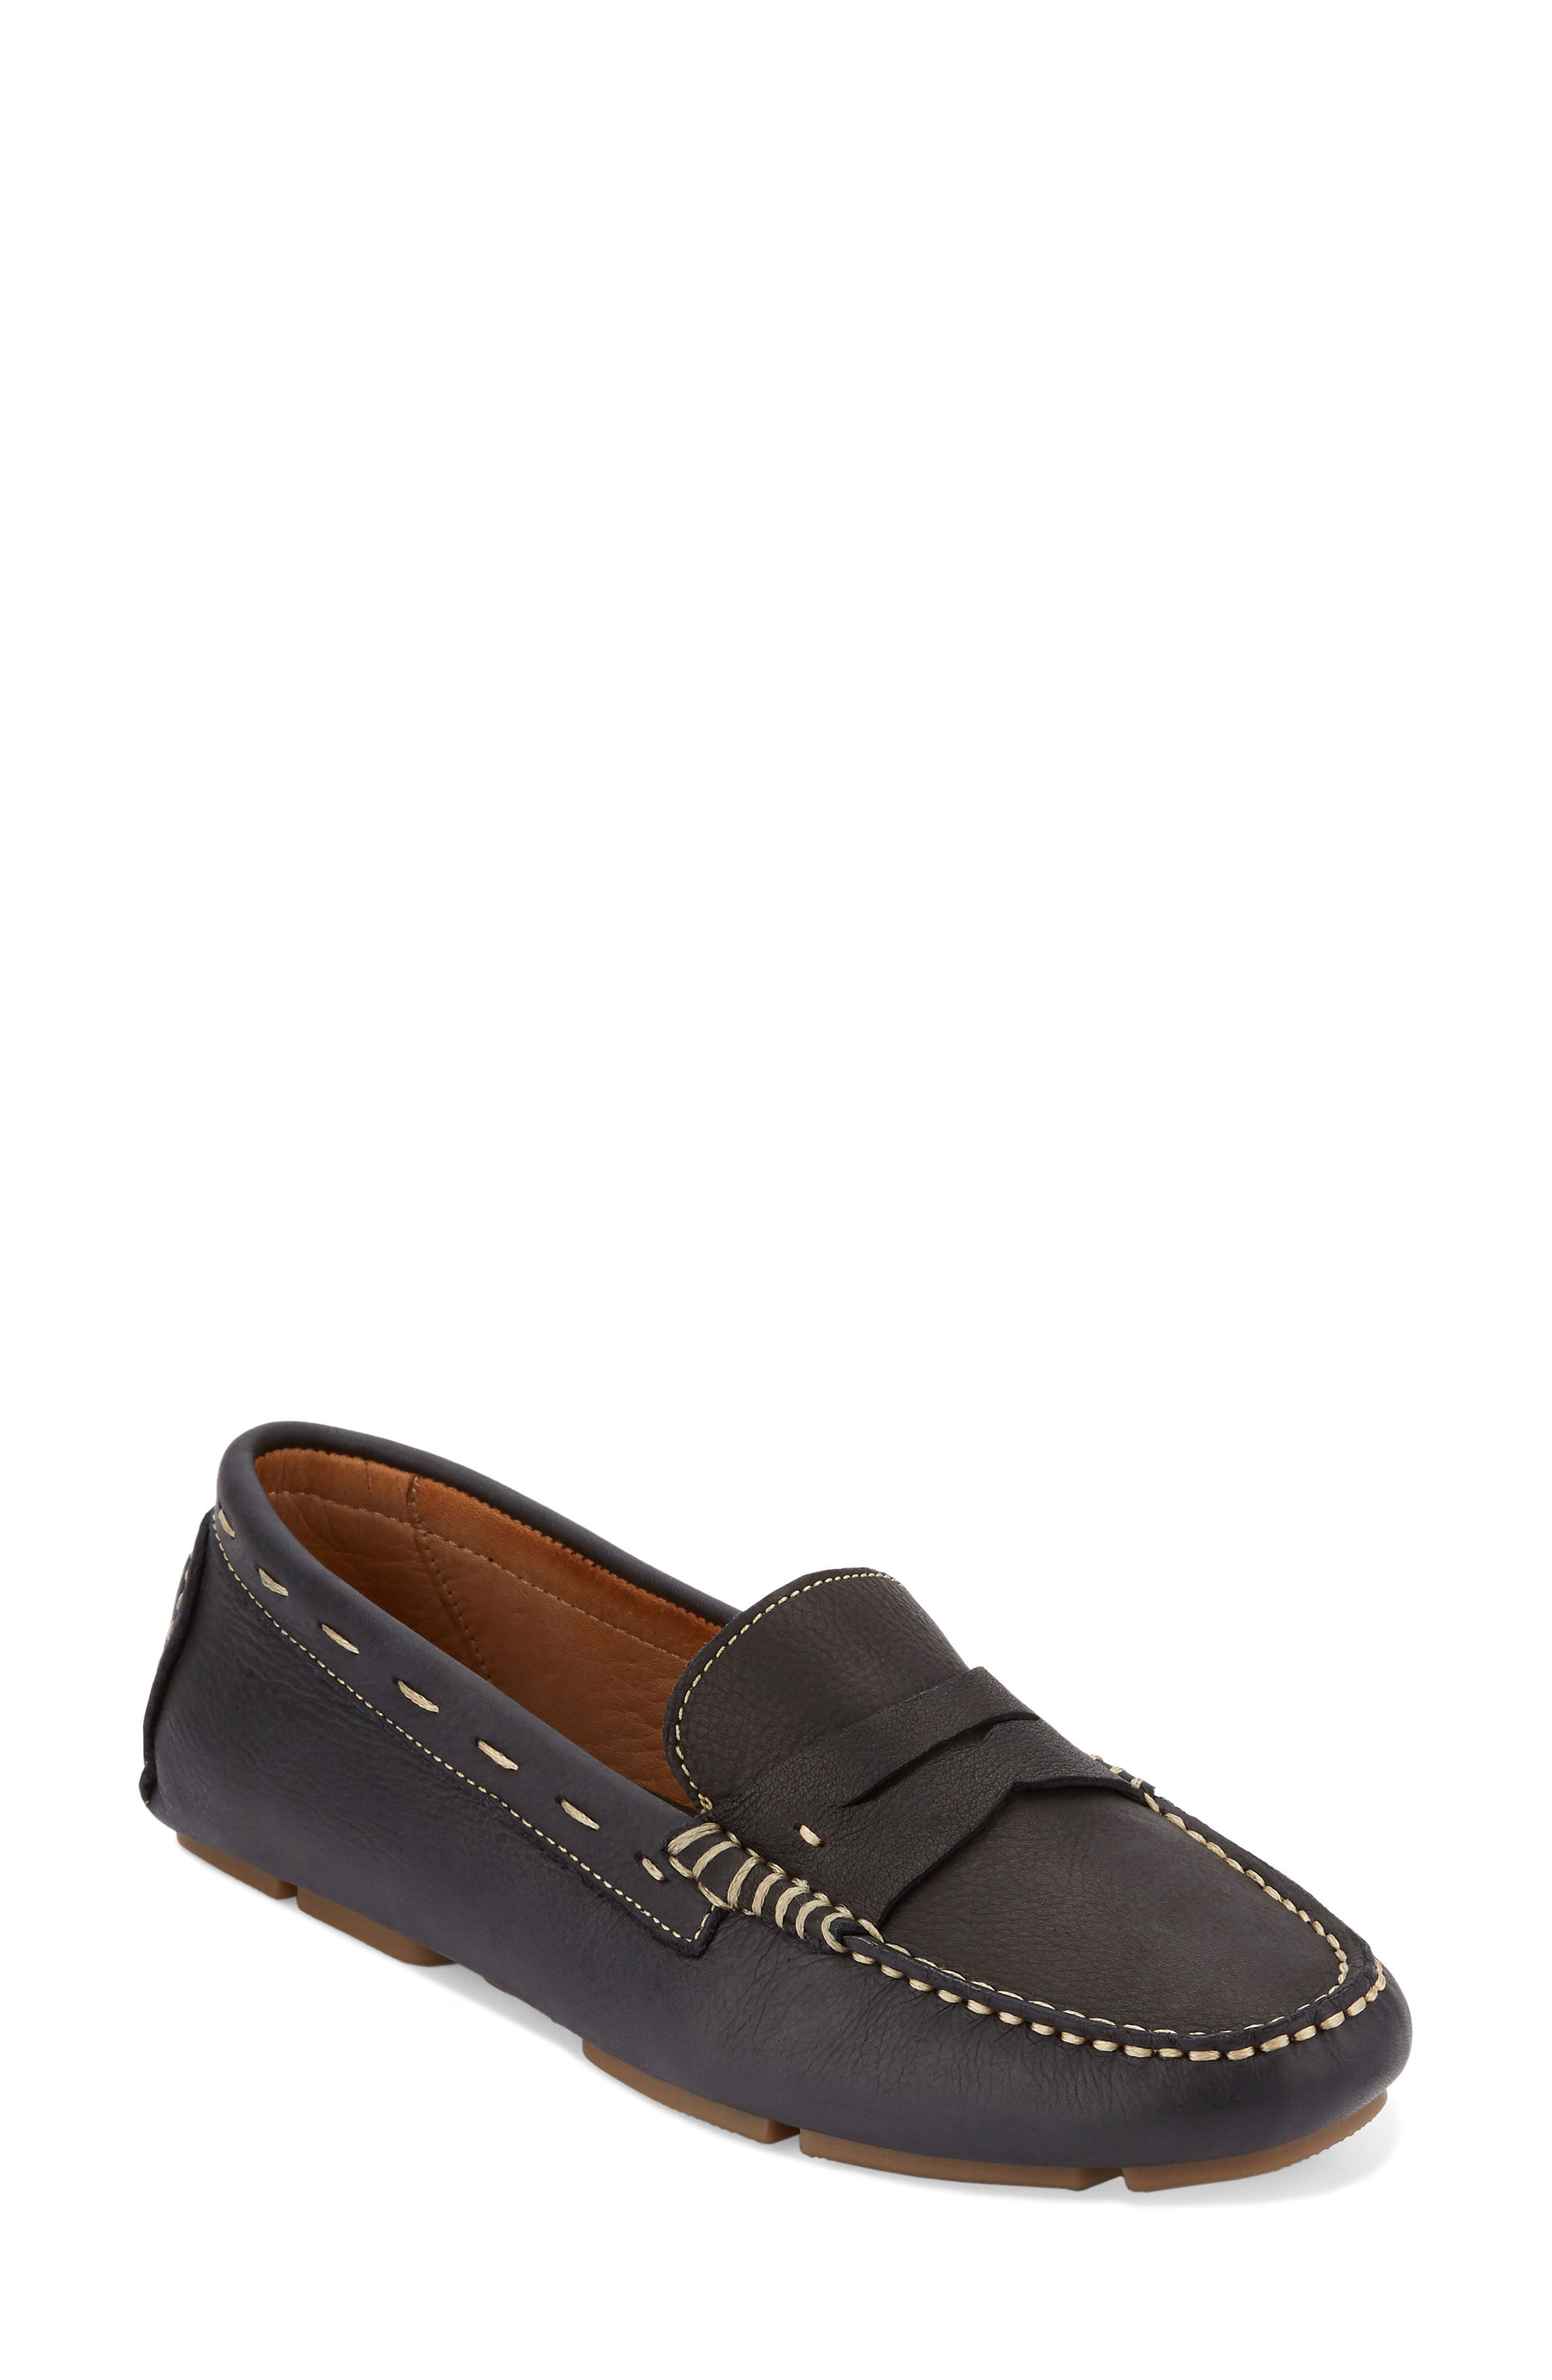 Patricia Driving Moccasin,                         Main,                         color, Black Leather